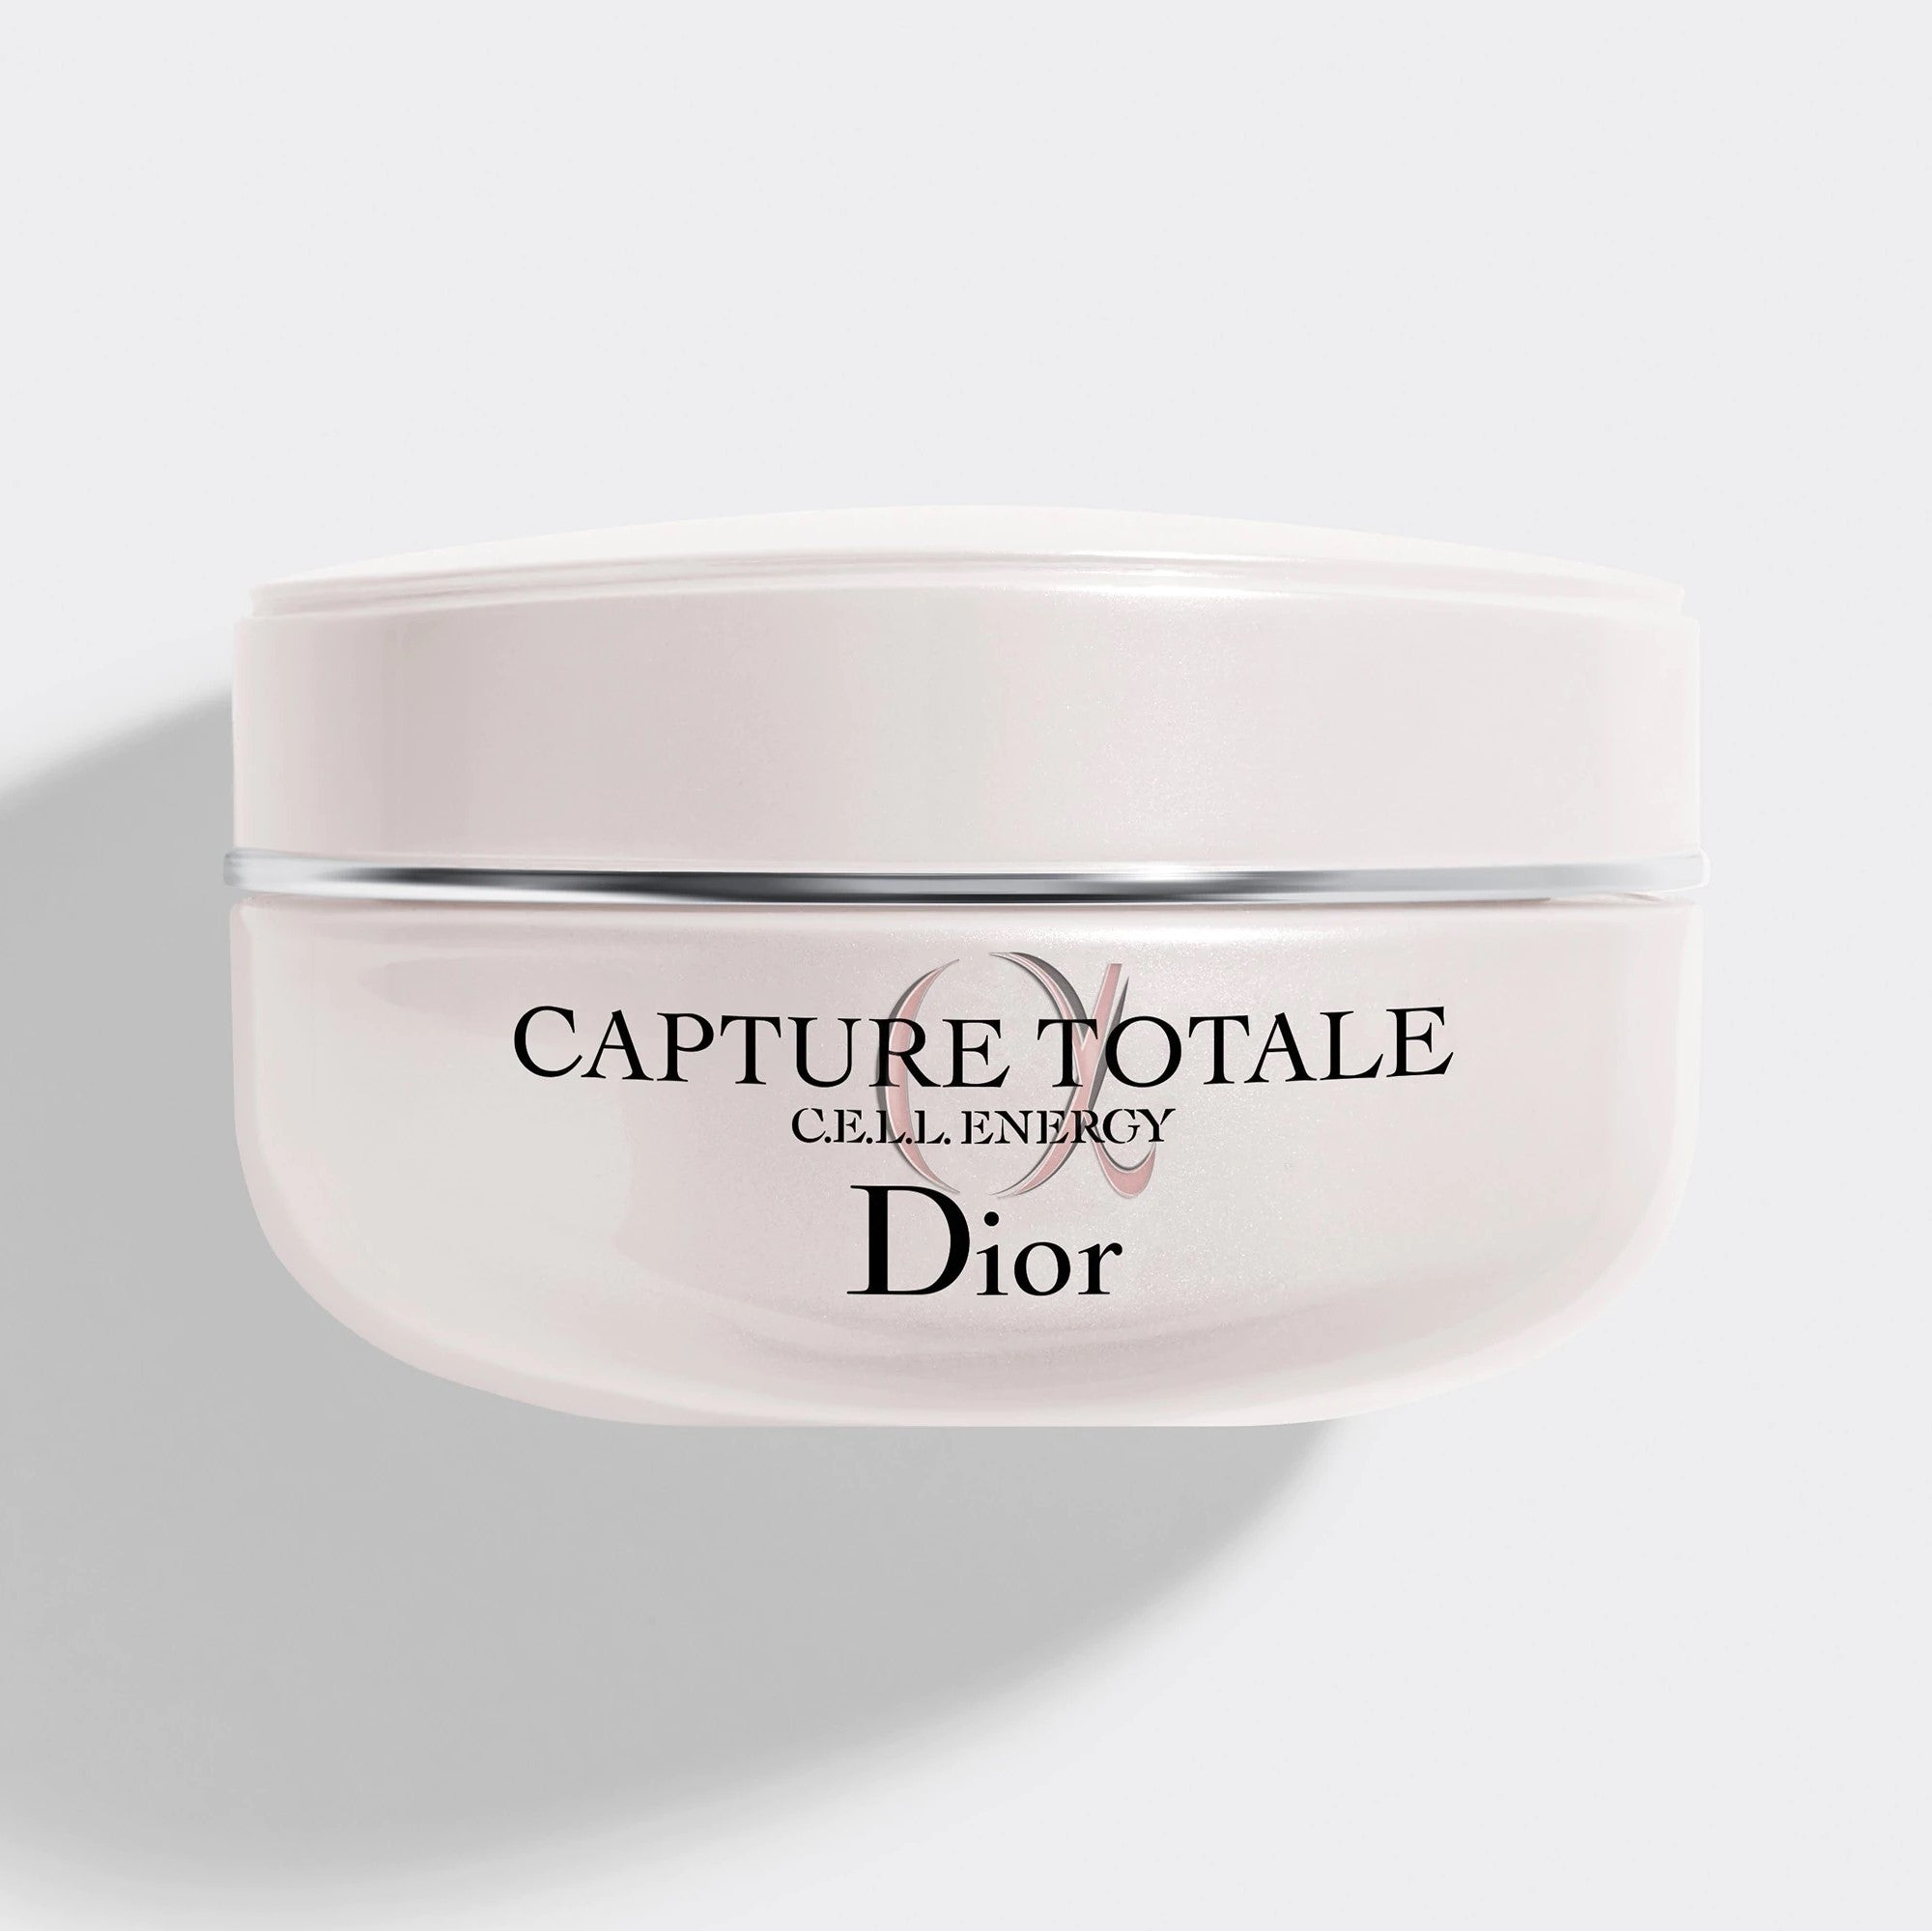 CAPTURE TOTALE | Firming & wrinkle-correcting creme